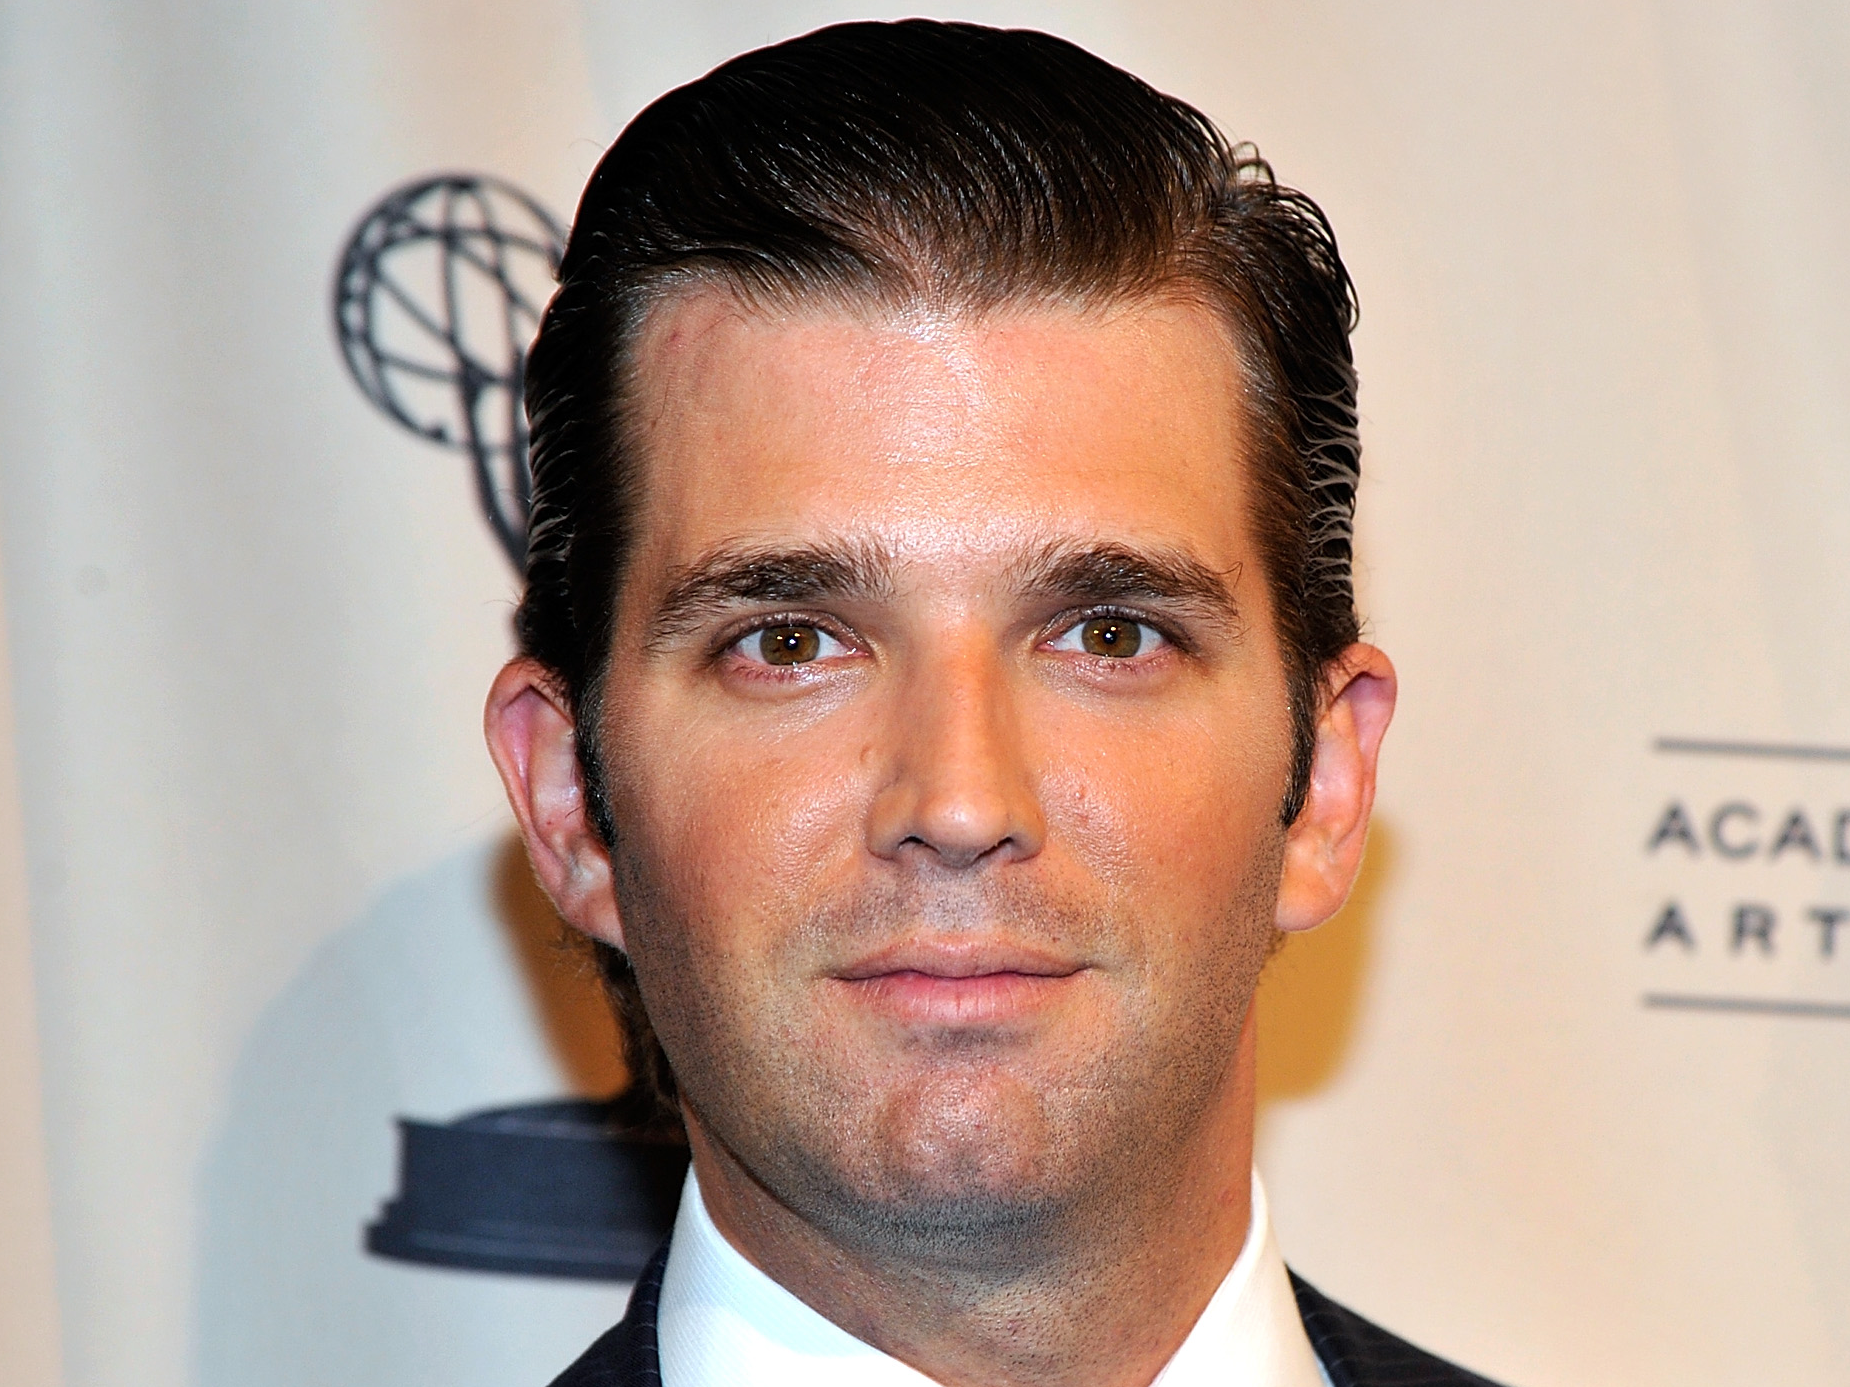 donald trump jr - photo #15